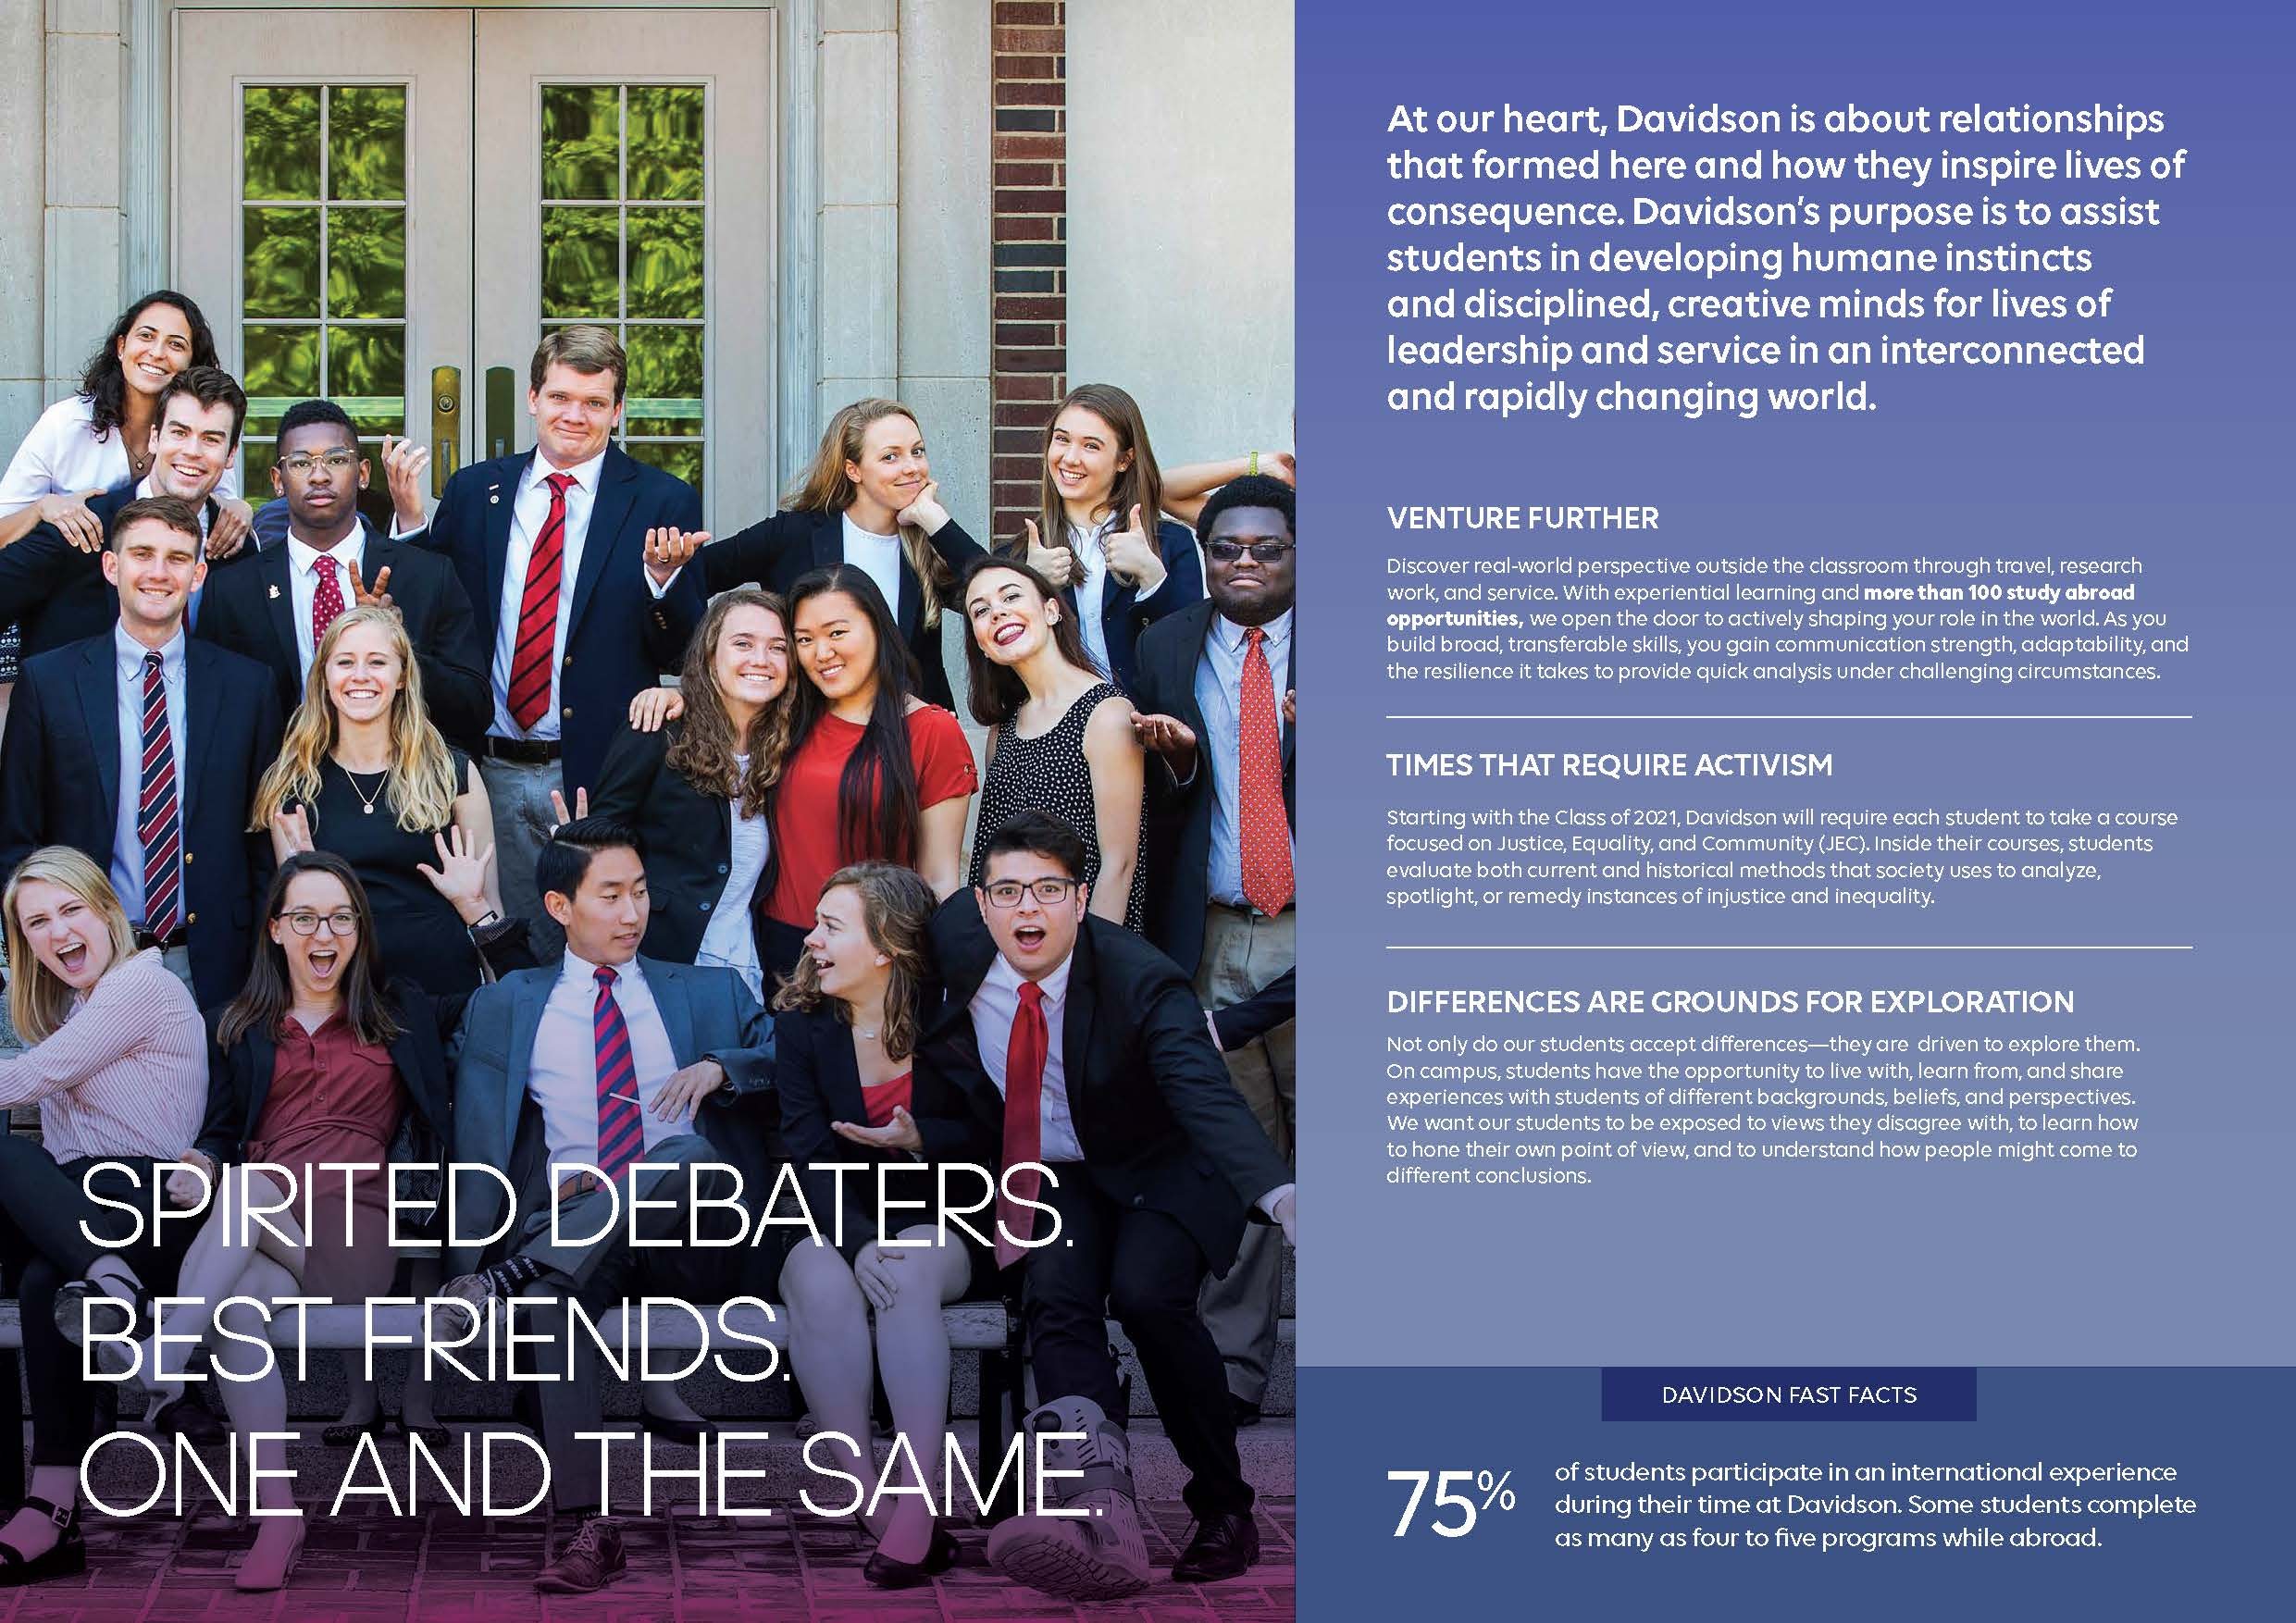 Viewbook: Spirited debaters. Best friends. One and the same.